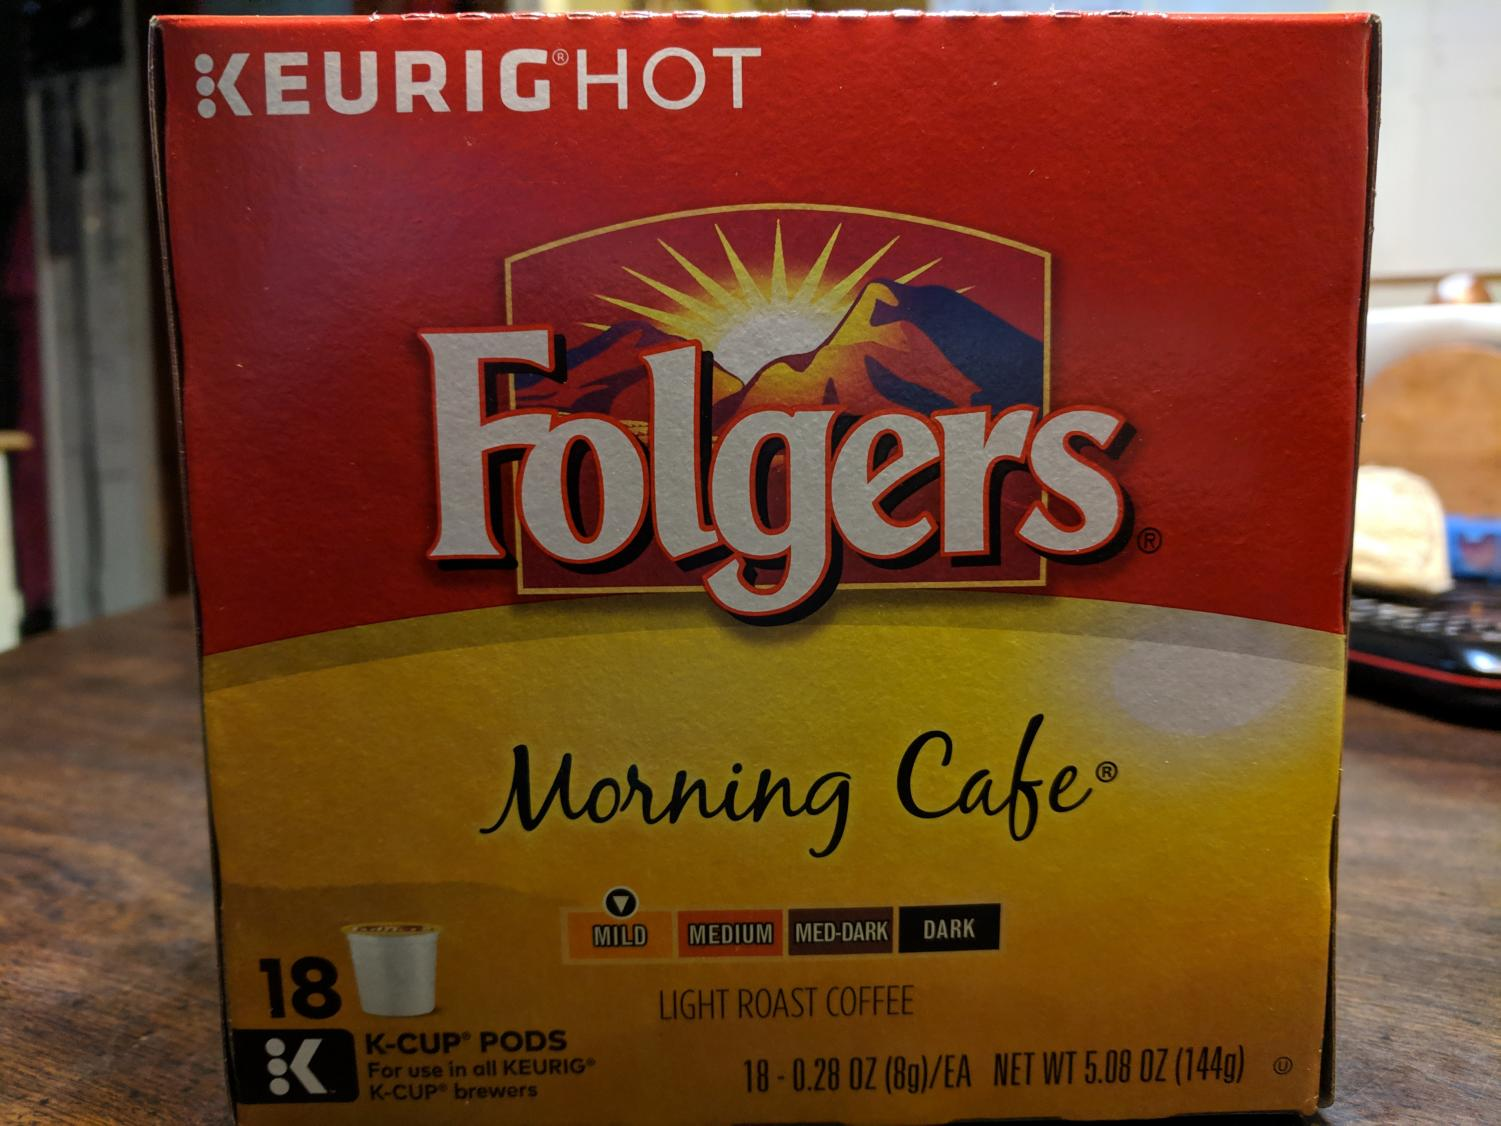 Is it the best part of waking up? Or is America in a caffeine crisis?